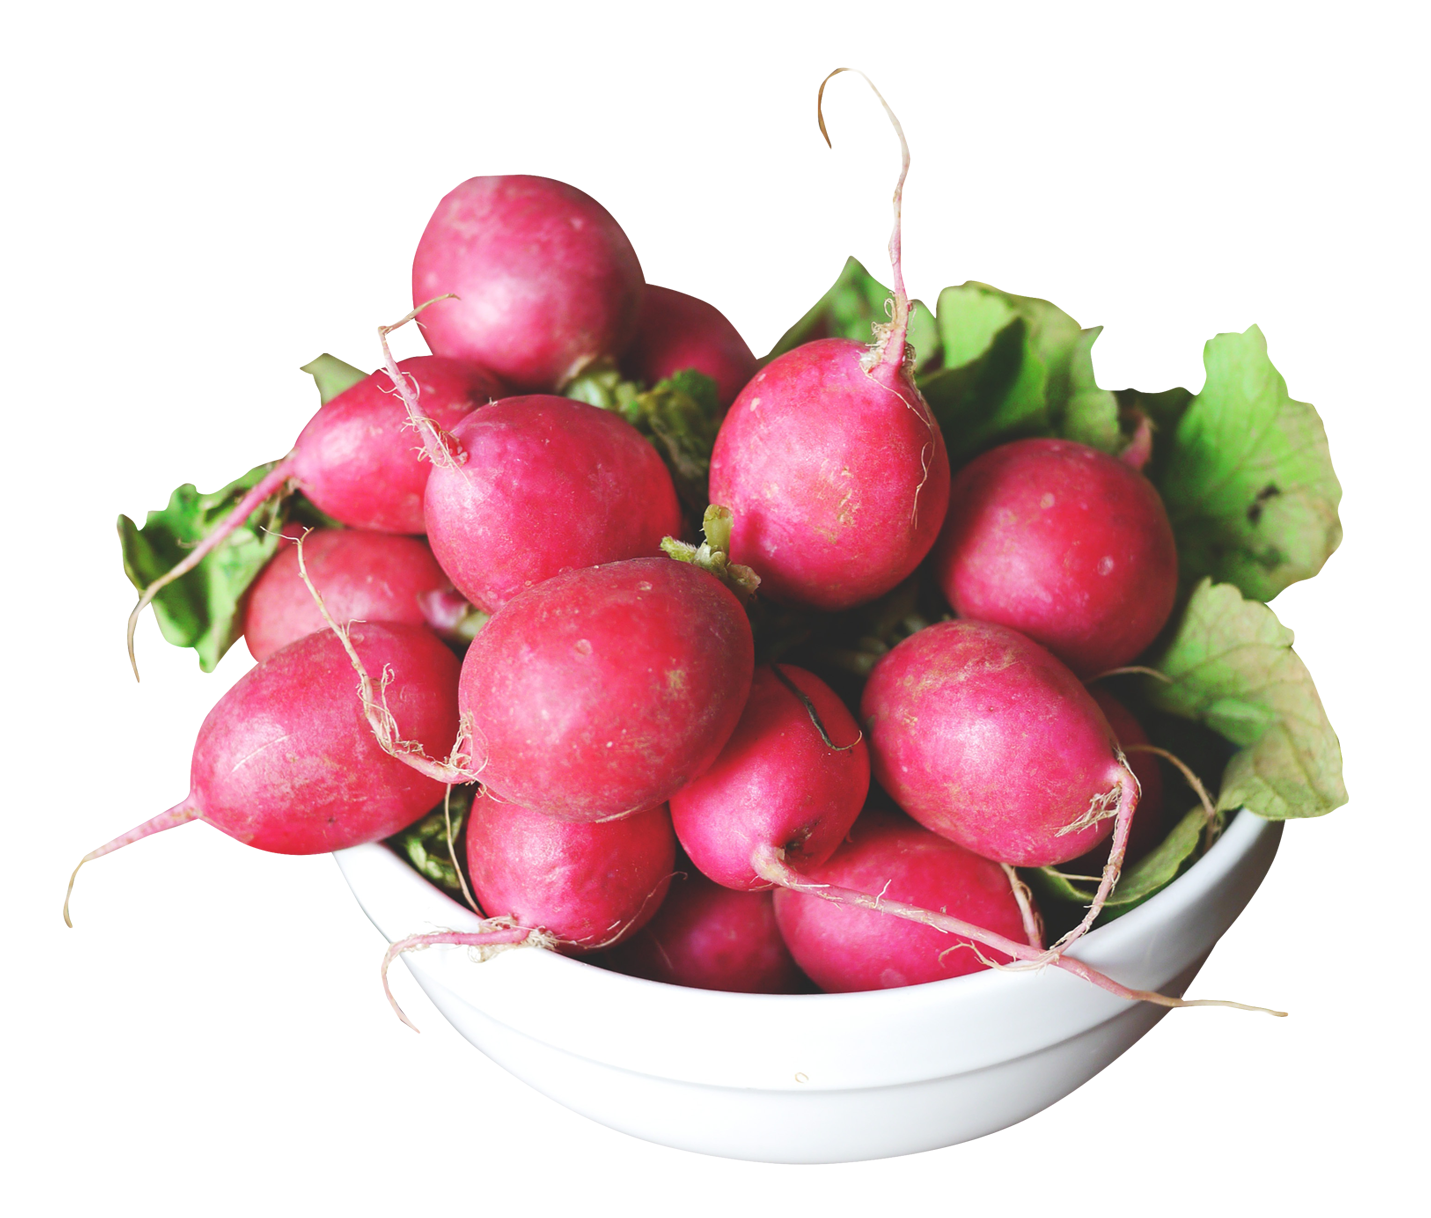 Radish in a Bowl PNG Image